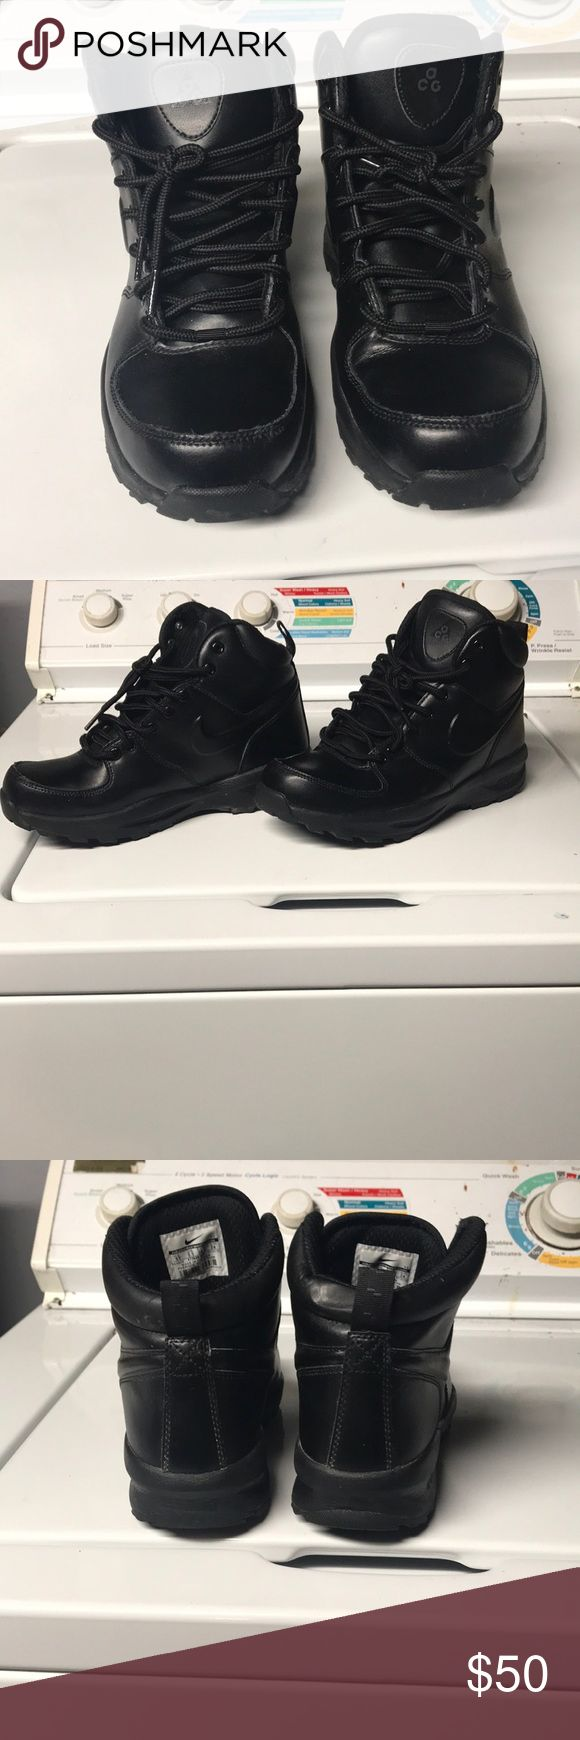 Black Nike ACG Boots LIKE NEW. Size 6 in big kids, equivalent to a women's size 8. Use offer button to negotiate! Nike Shoes